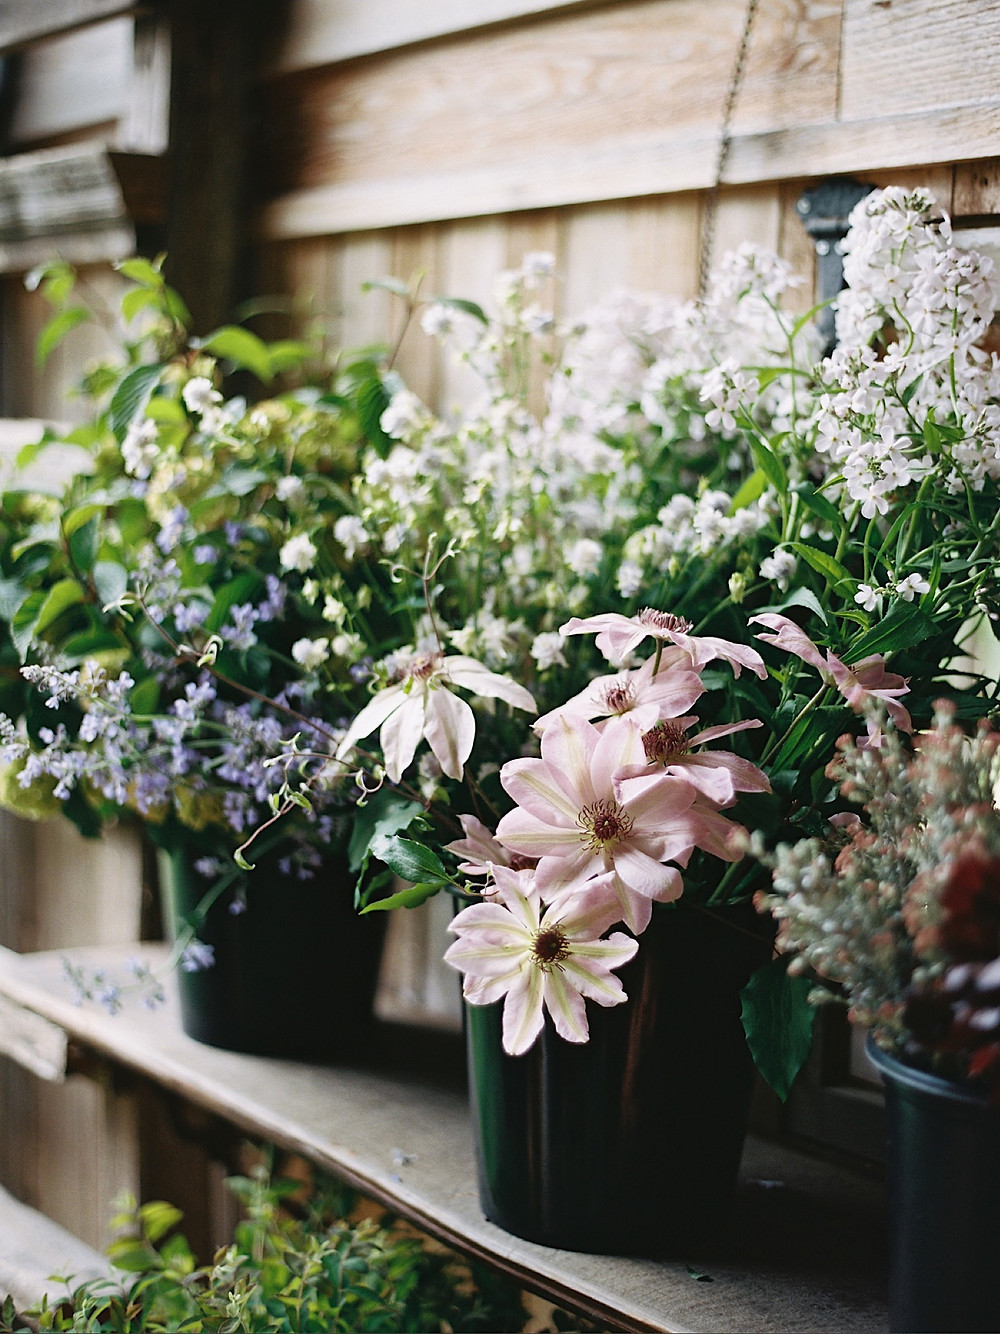 The Bridal Bouquet: A foraging and floral design workshop in Seattle from top wedding florist Botanique